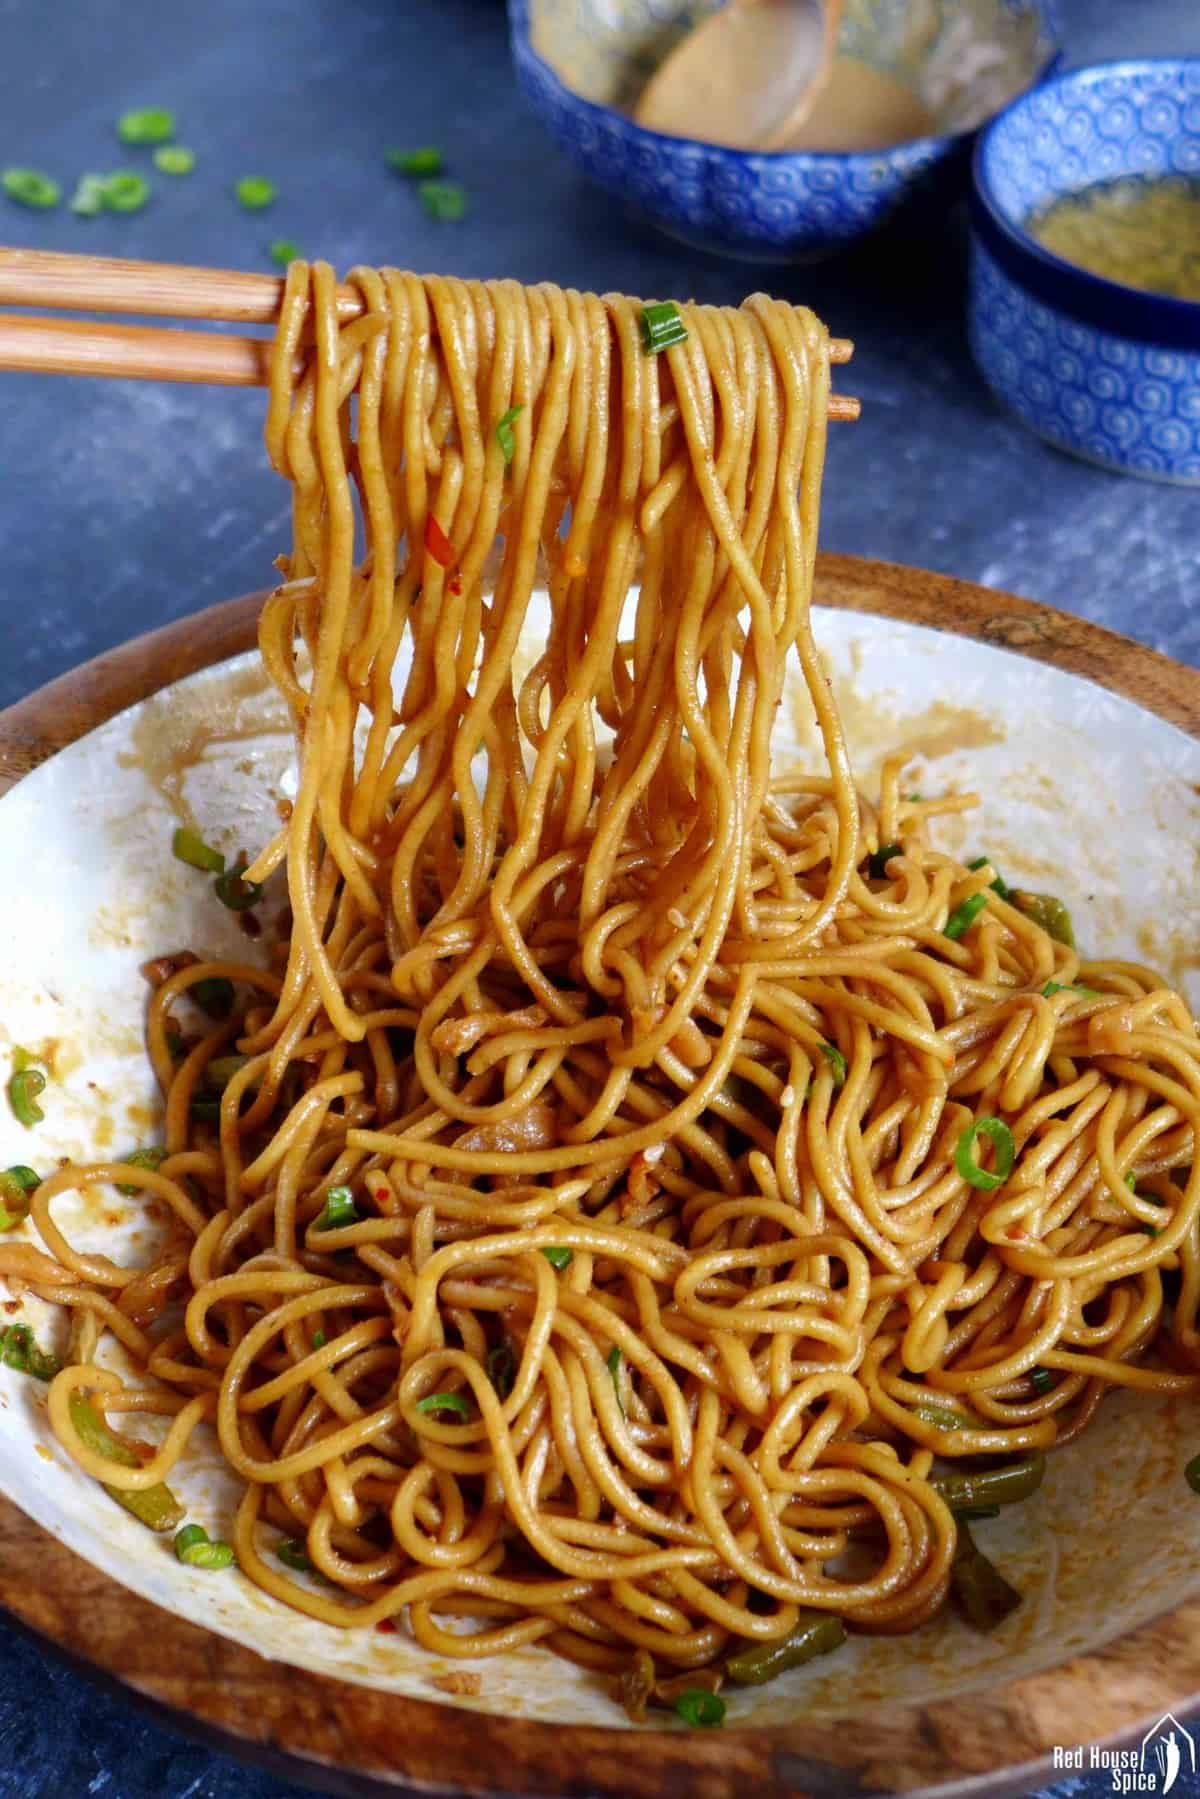 hot dry noodles lifted by chopsticks.